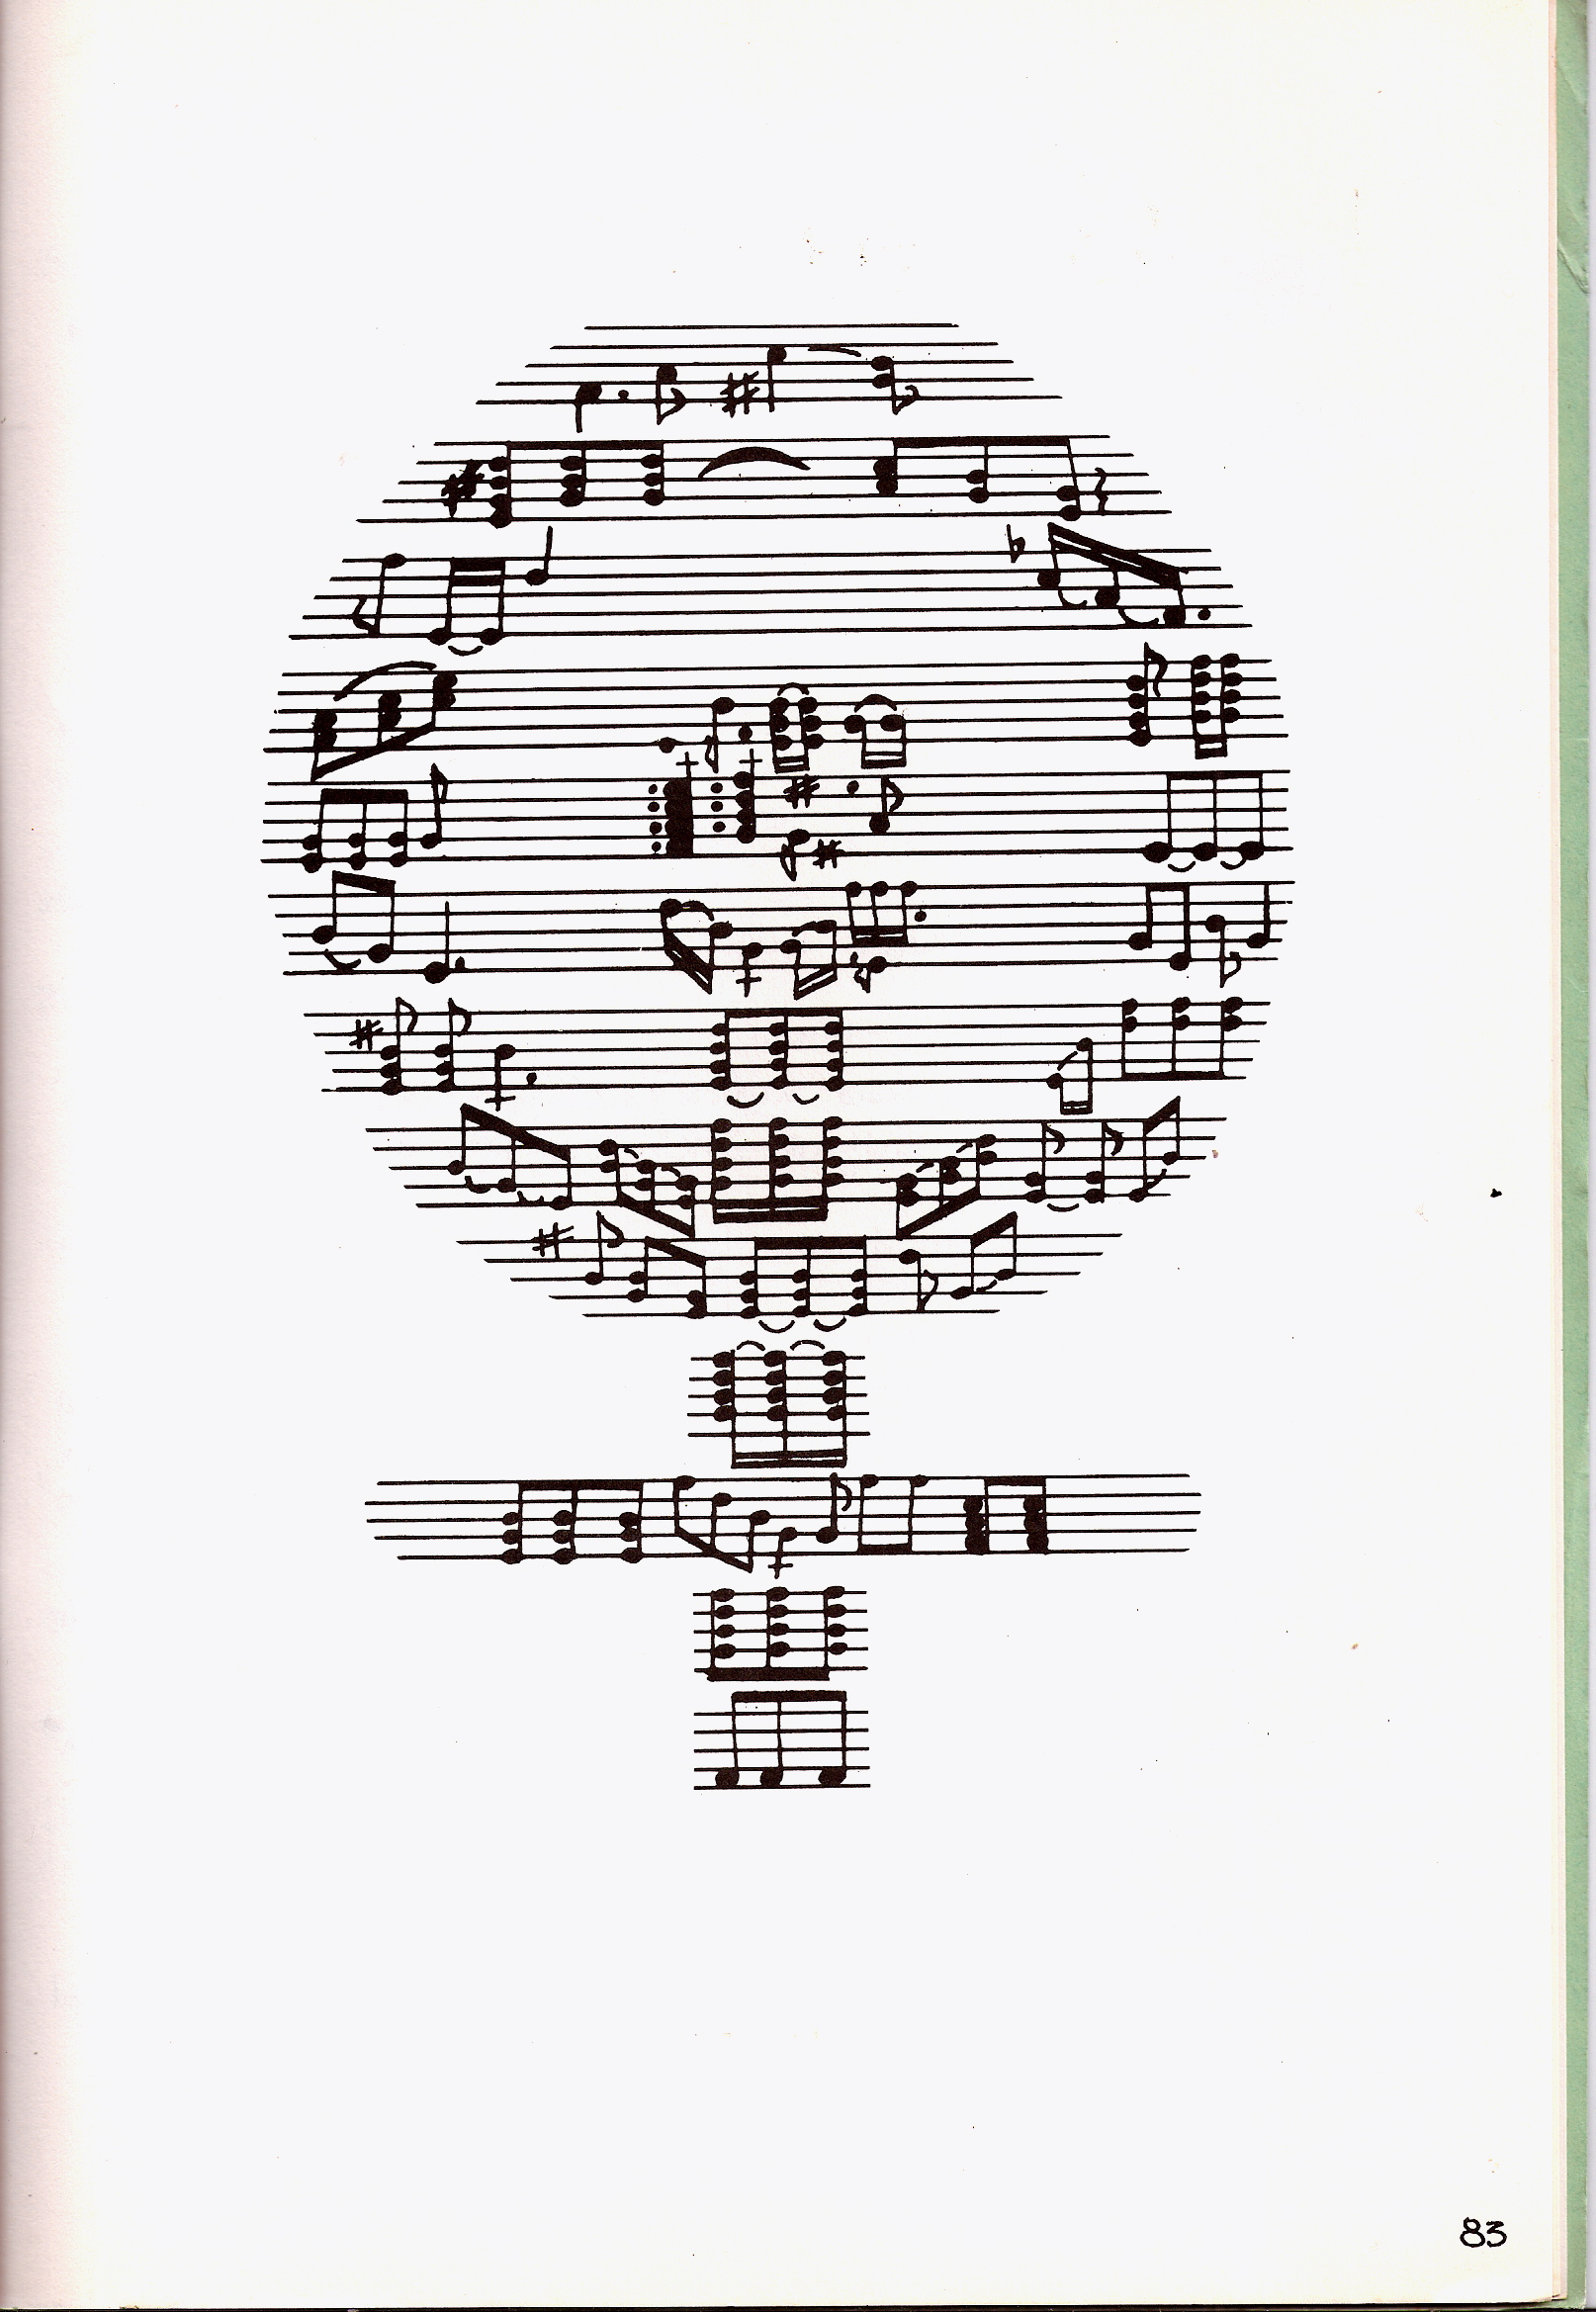 Drawn music notes woman's Staves Liberation  and A